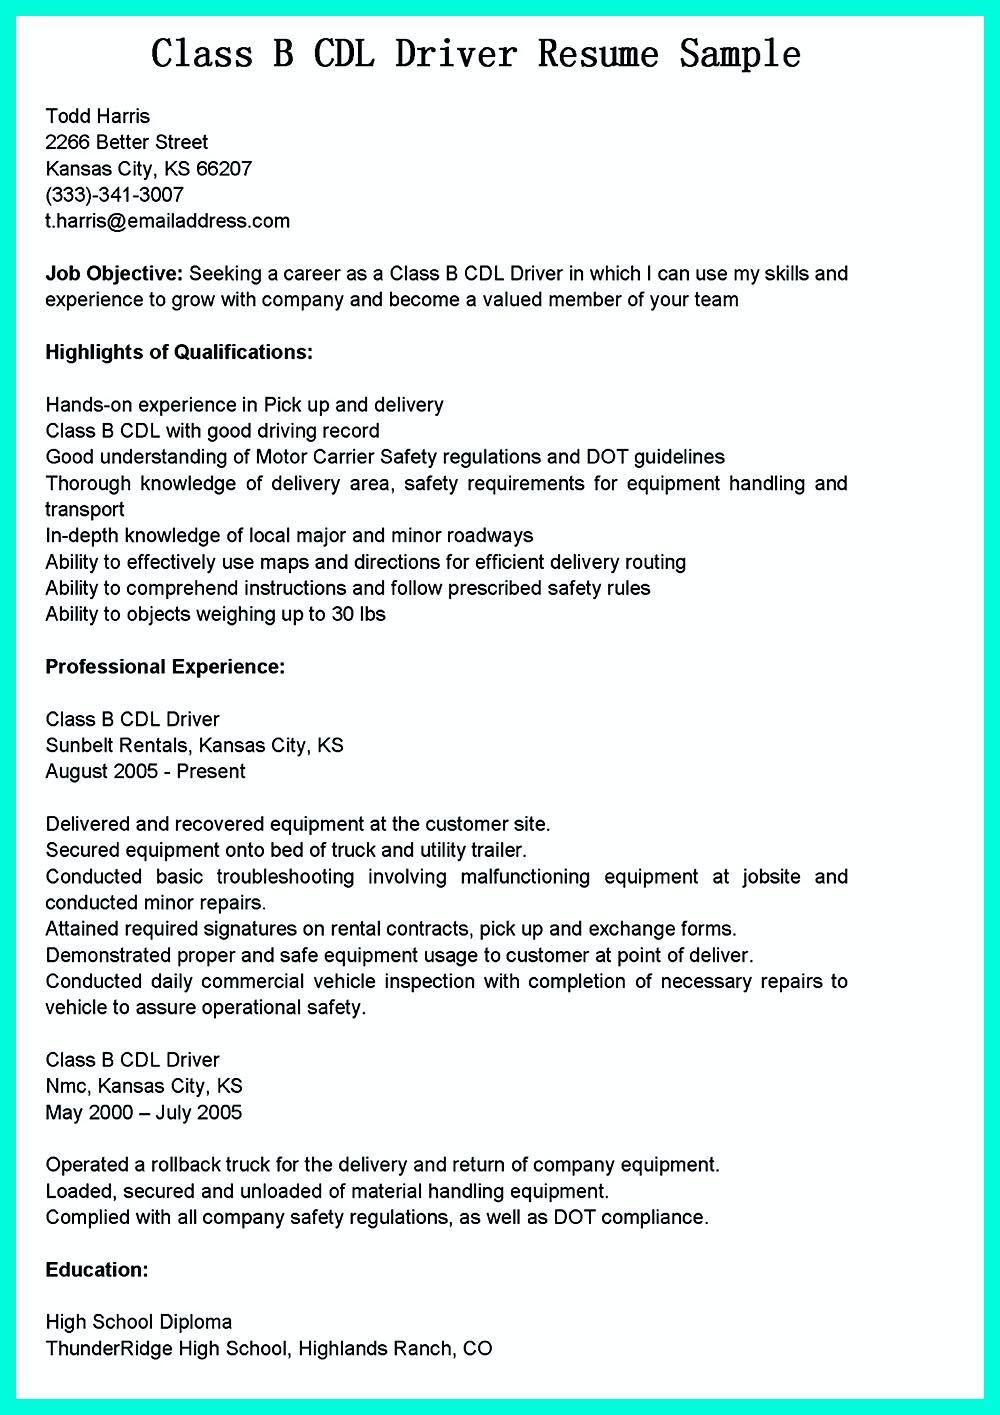 Driver Resume We Understand That You Really Want The Cdl Driver Job Soonbut